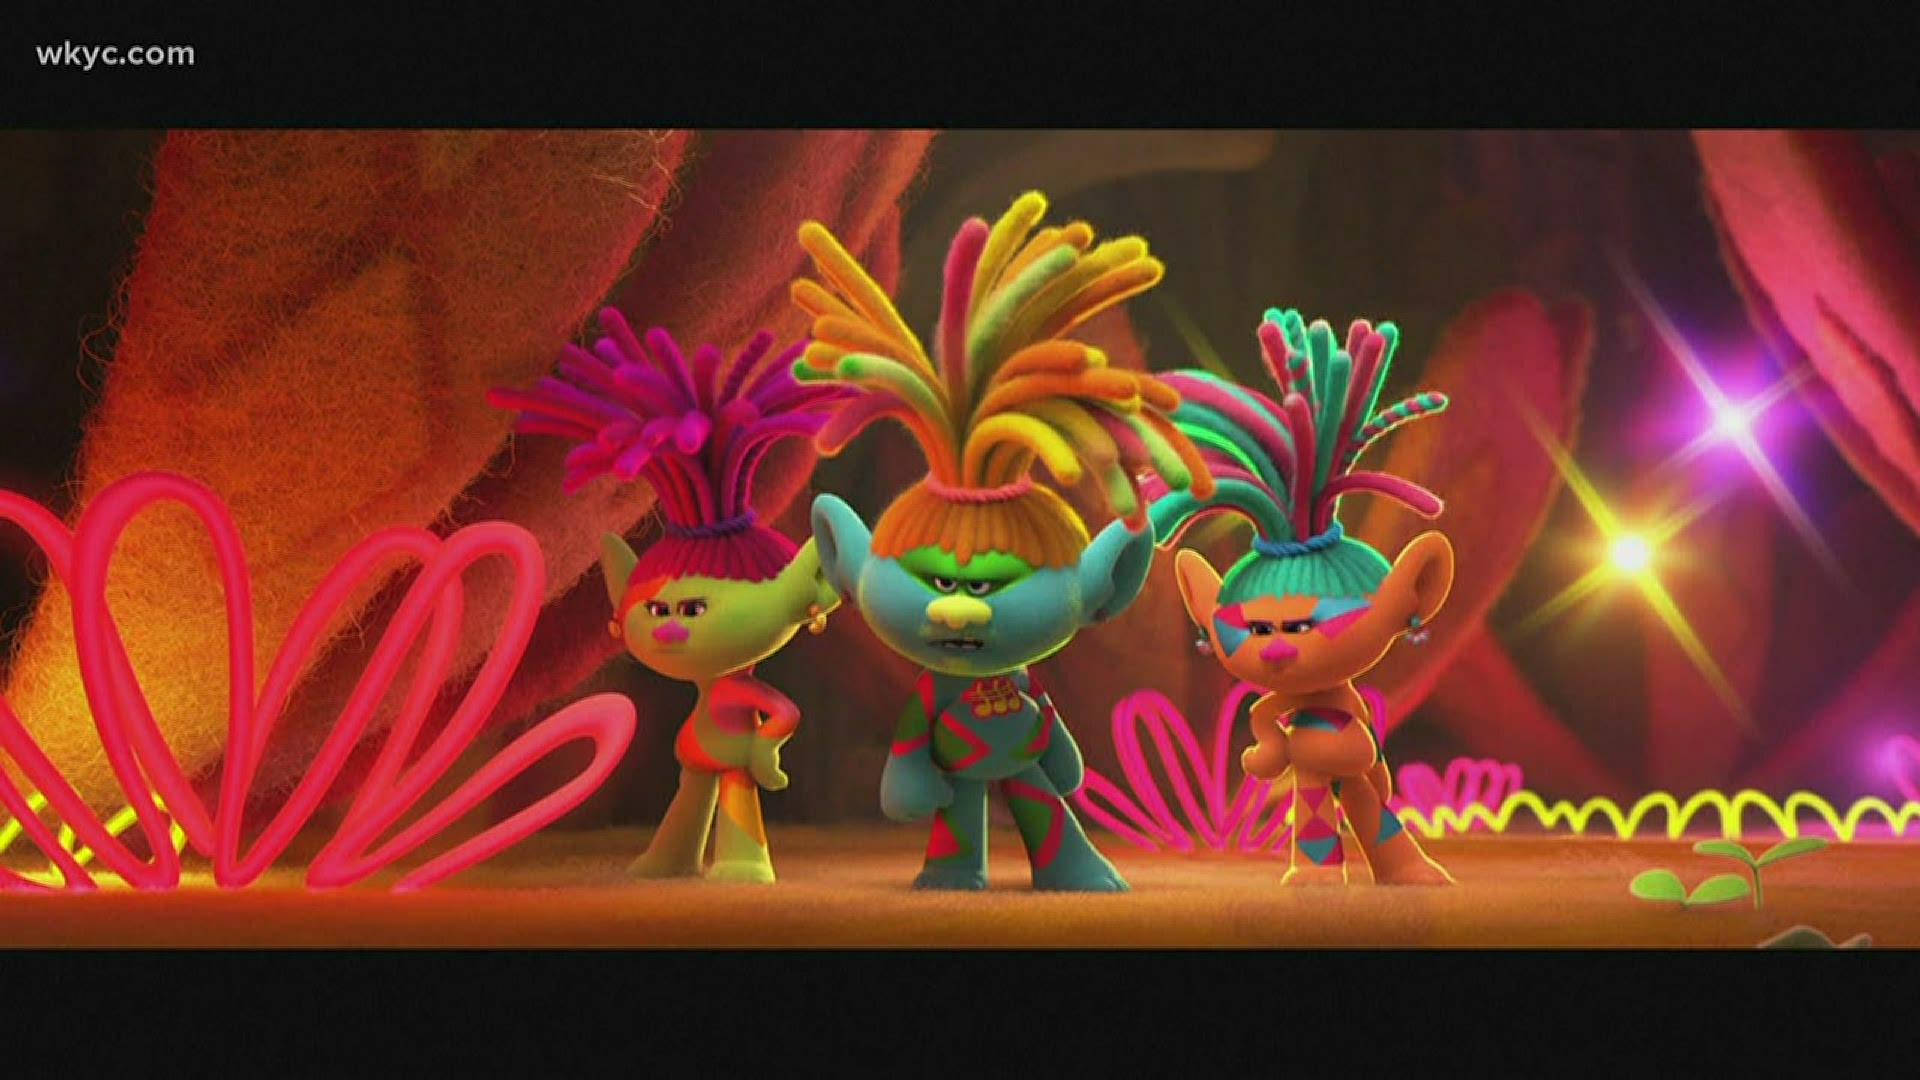 Trolls World Tour Goes Online For Premiere And Launches Activity Packet For Fans Wkyc Com